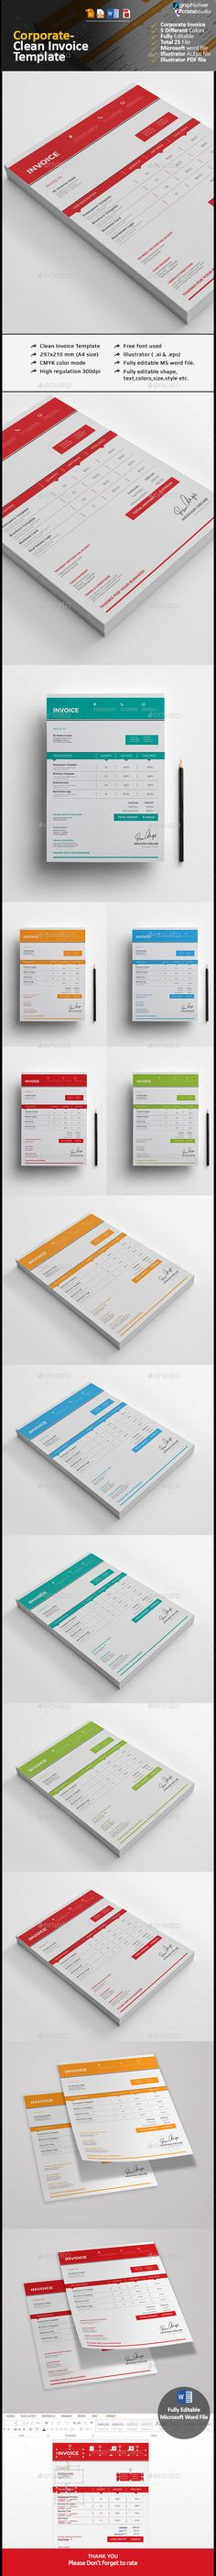 Stationary  Invoice Design Template v5 Stationary, Template and - graphic design invoice sample